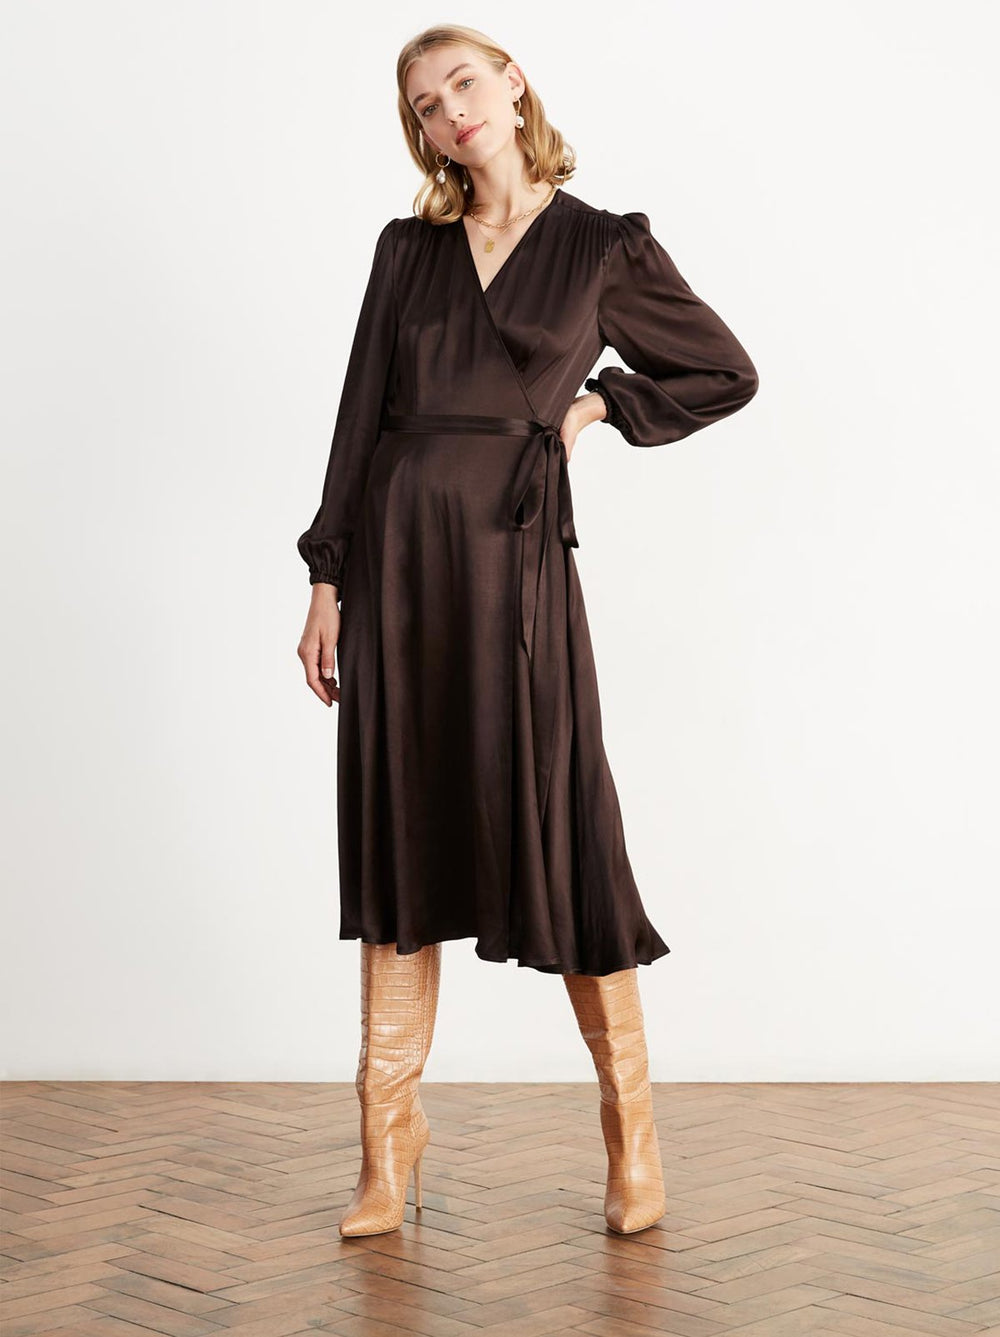 Diana Chocolate Wrap Dress by KITRI Studio